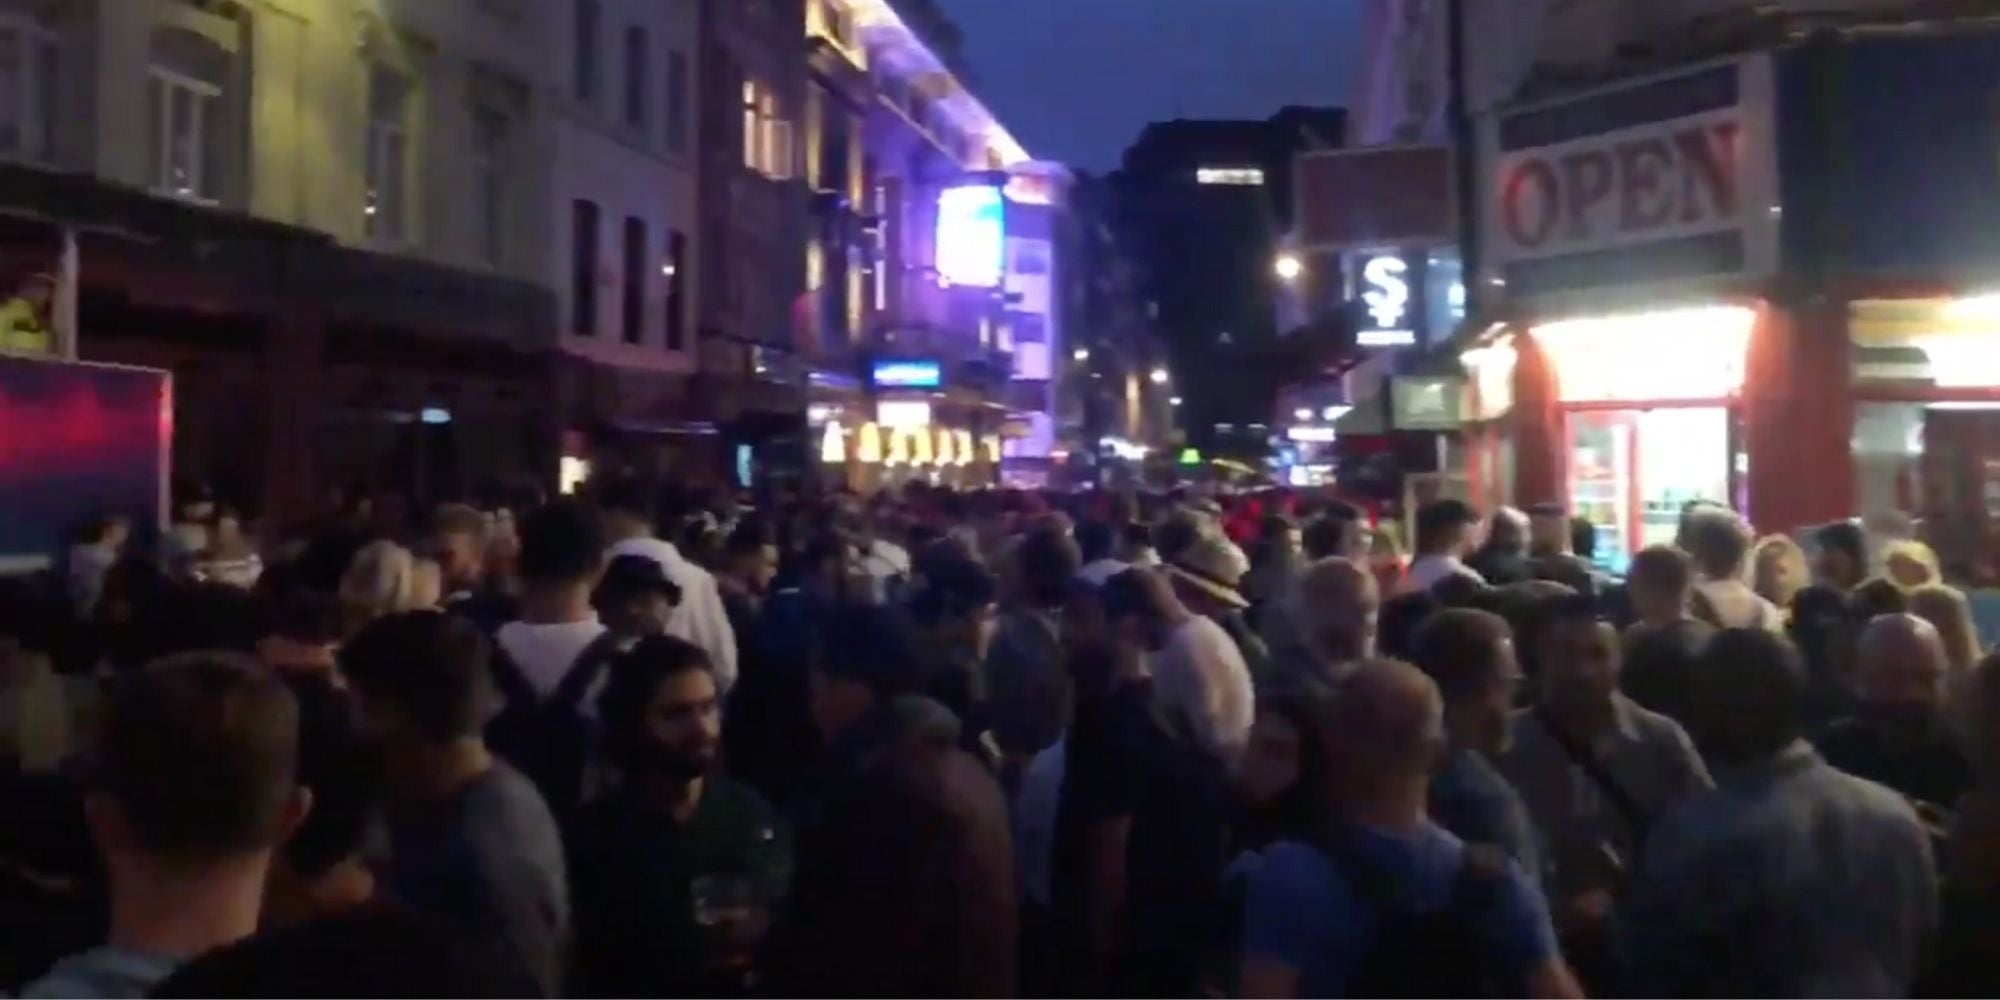 Huge crowds slammed as 'selfish' and 'dangerous' as central London is overrun with pub-goers